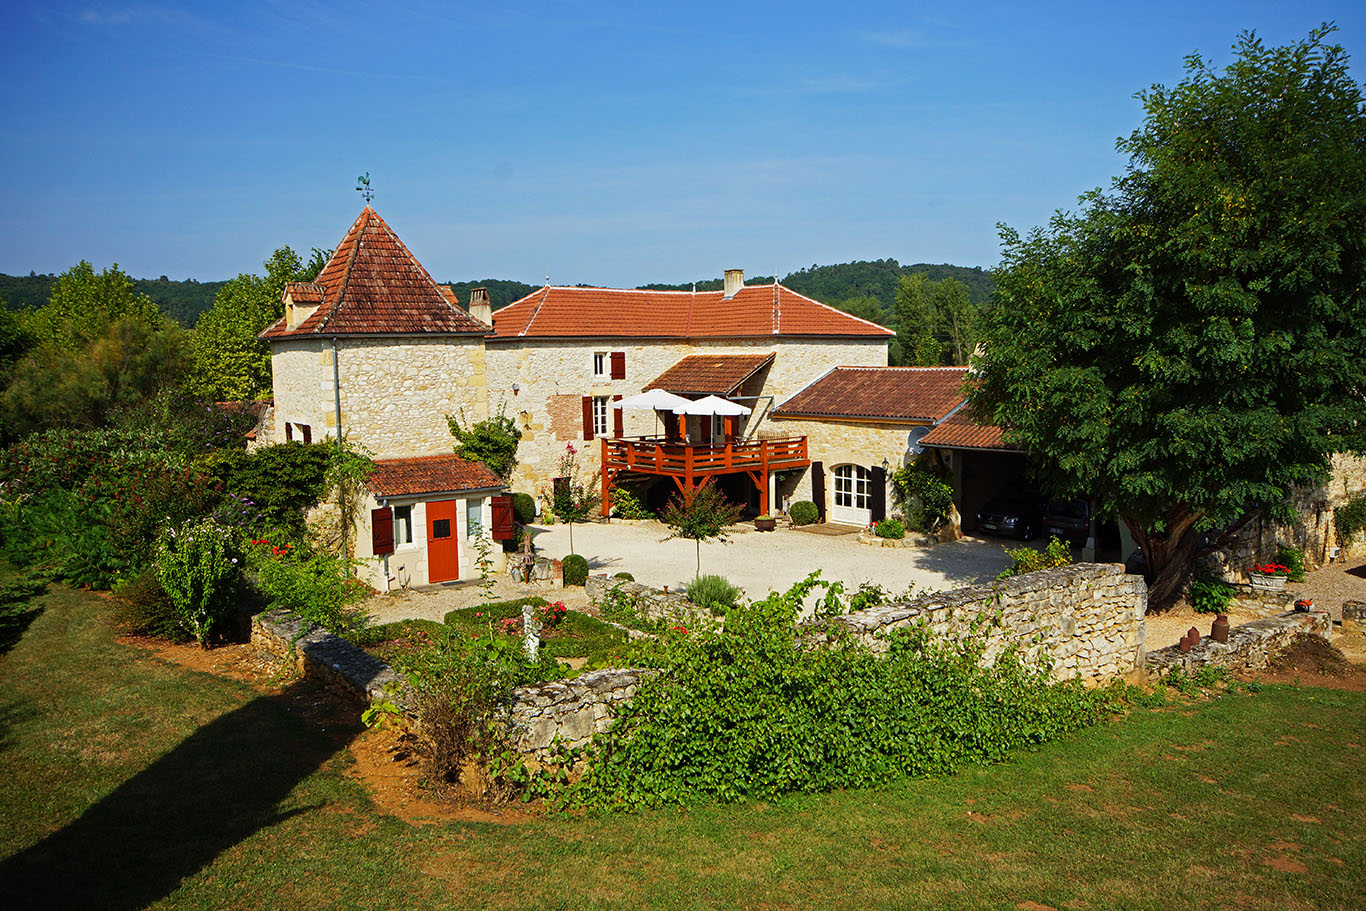 French Property For Sale Classic French Houses Luxury